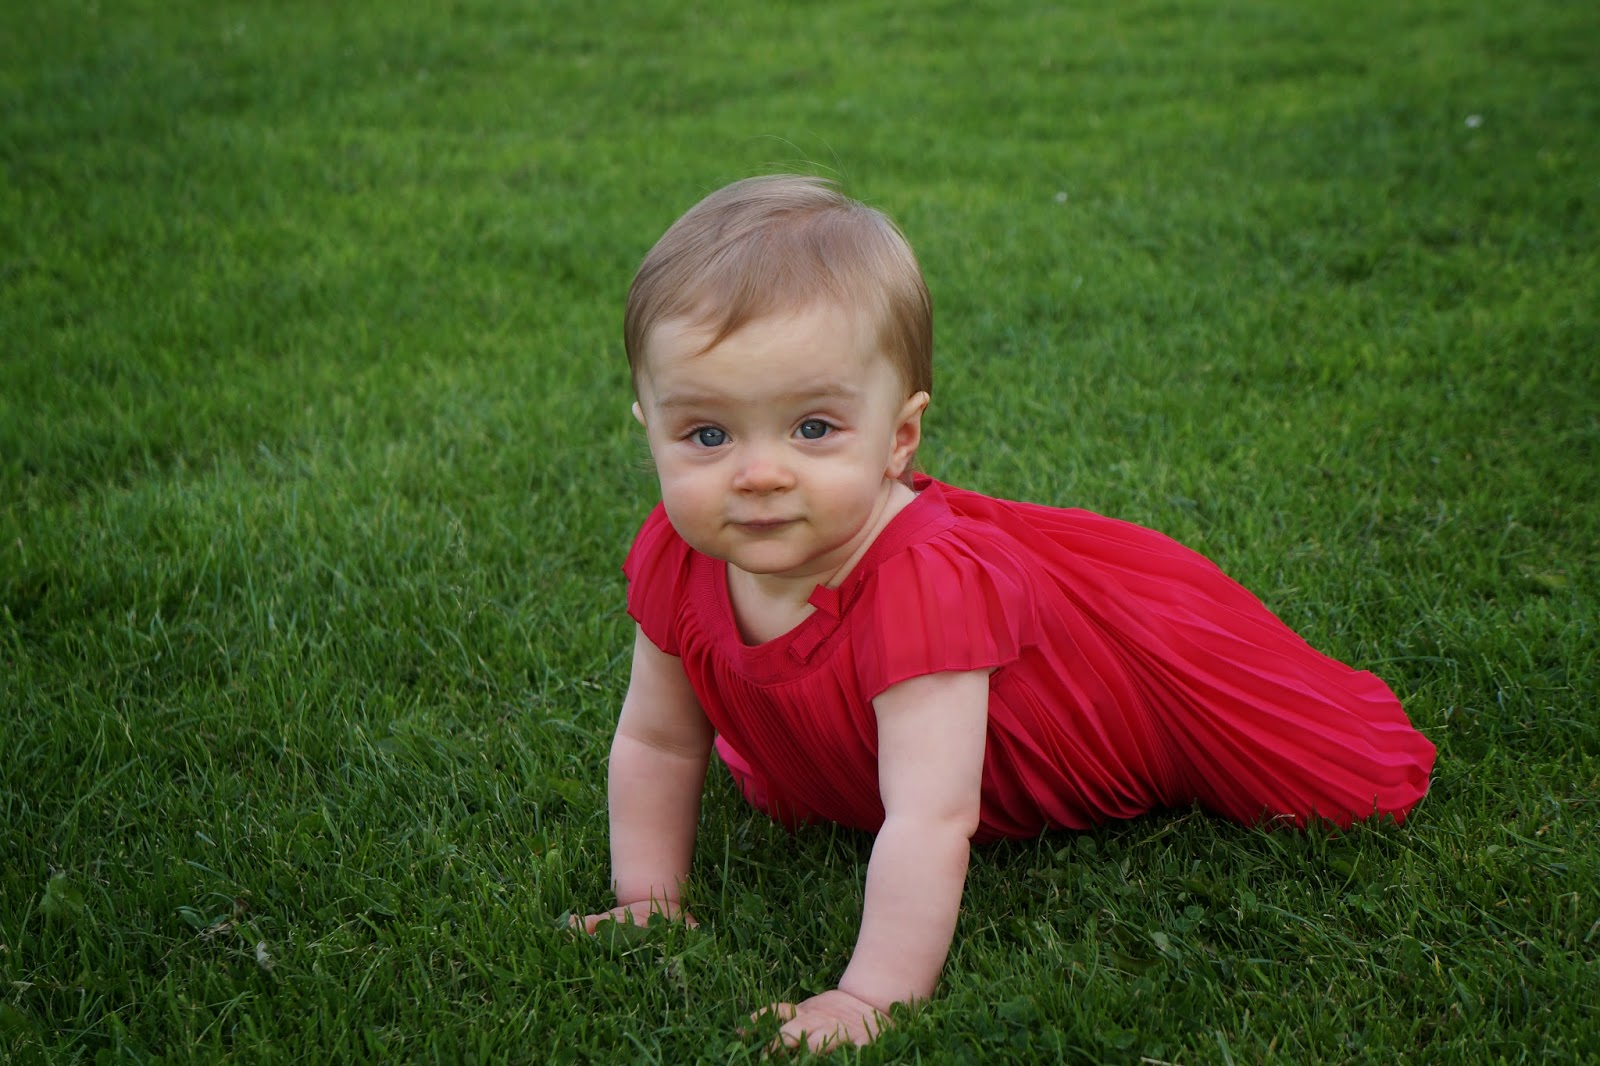 baby in red dress on grass